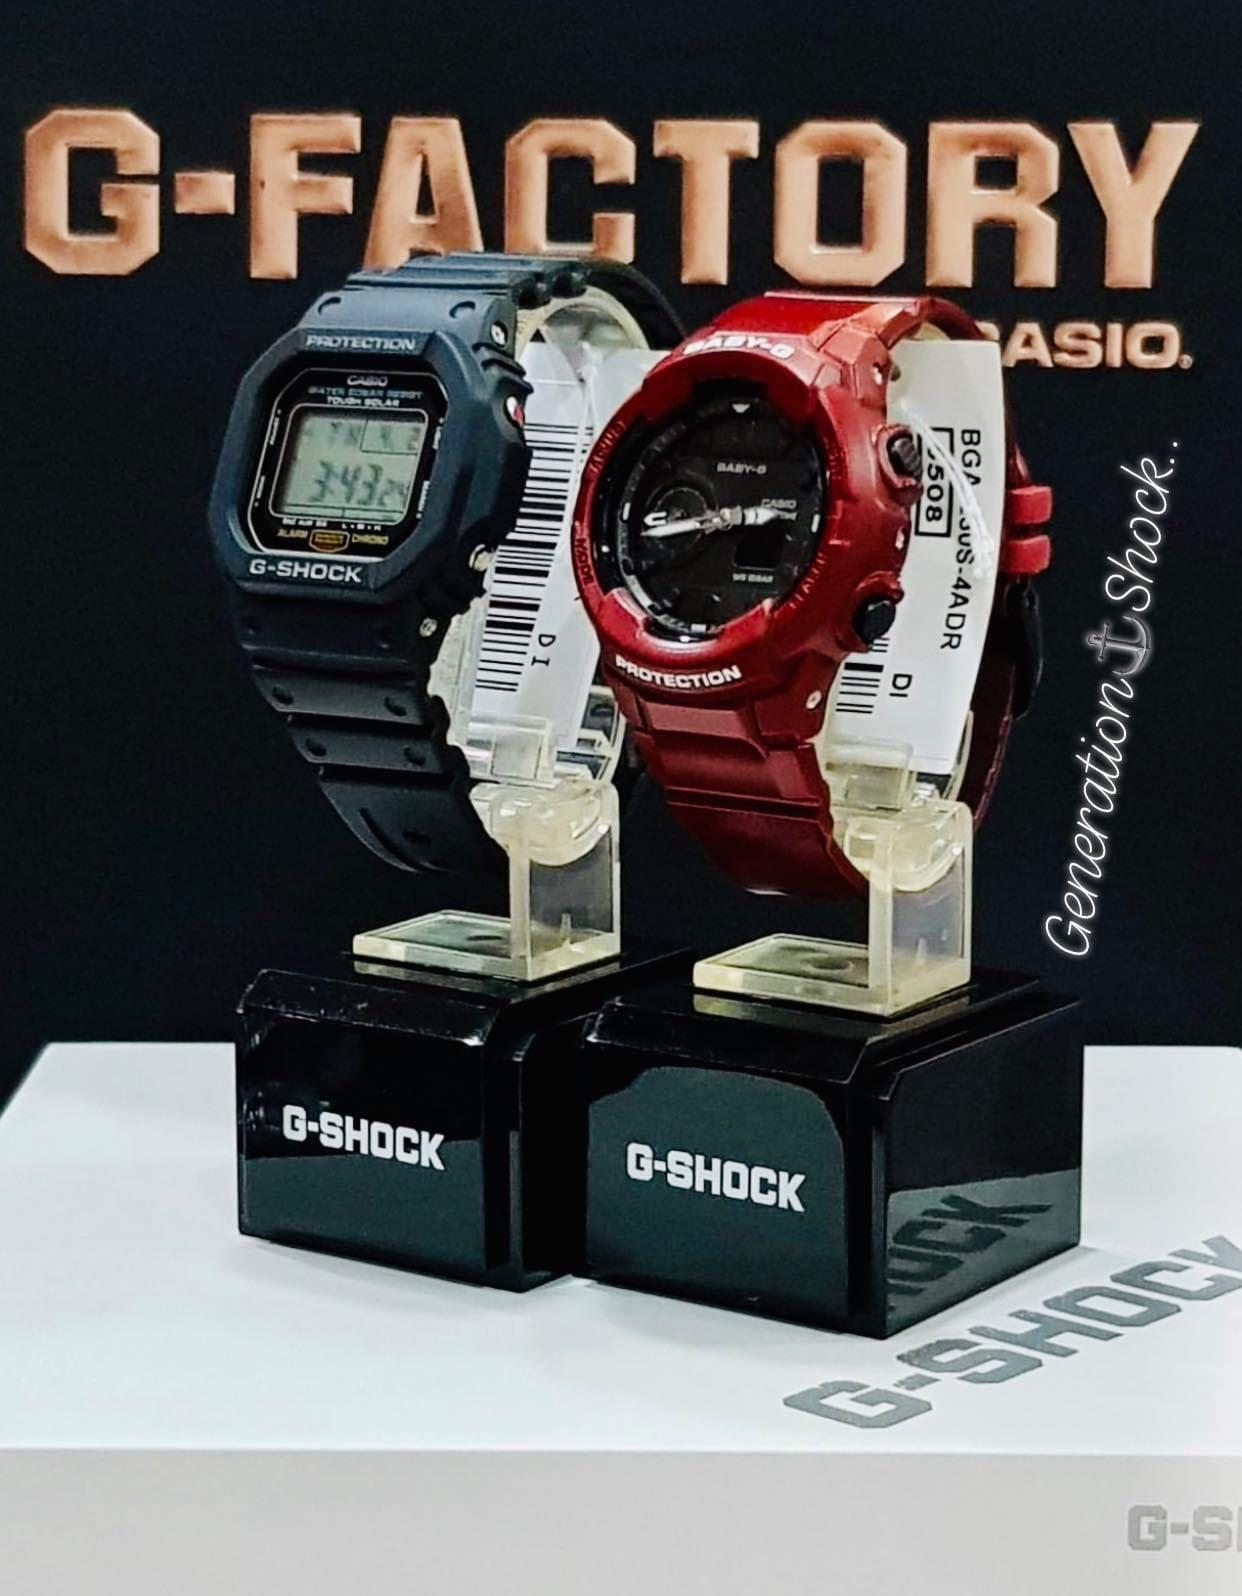 NEW🌟COUPLE💝SET : BABYG + GSHOCK DIVER UNISEX SPORTS WATCH  : 100% ORIGINAL AUTHENTIC CASIO BABY-G-SHOCK : BGA-230S-4A + G-5600E-1